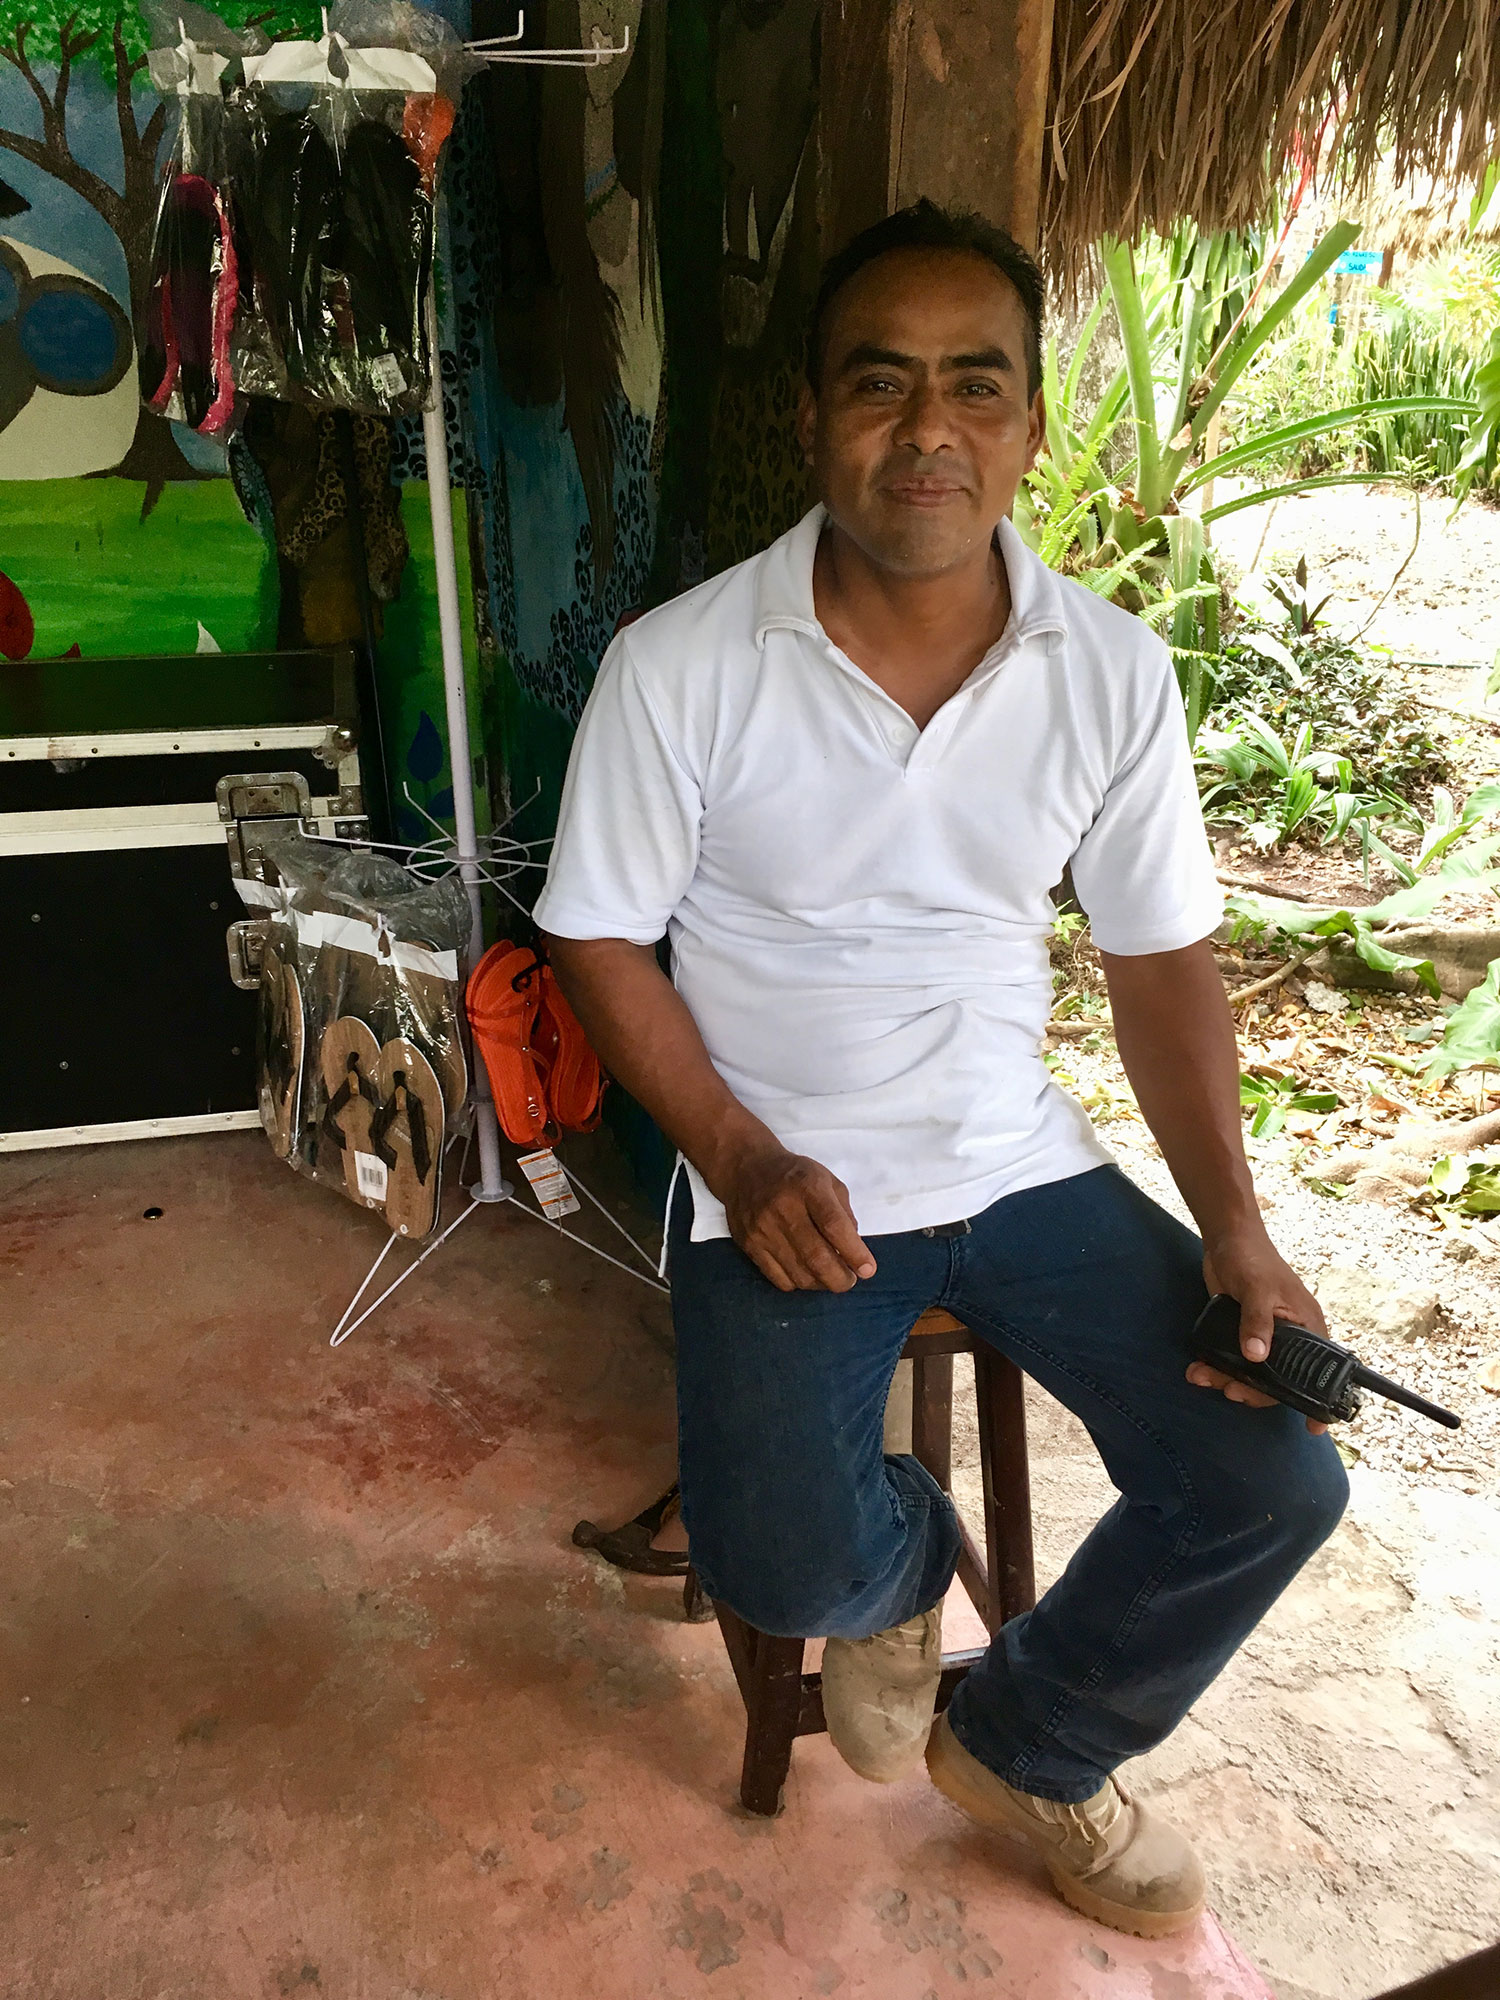 Alfonso works at reception and lives in this village with his family.